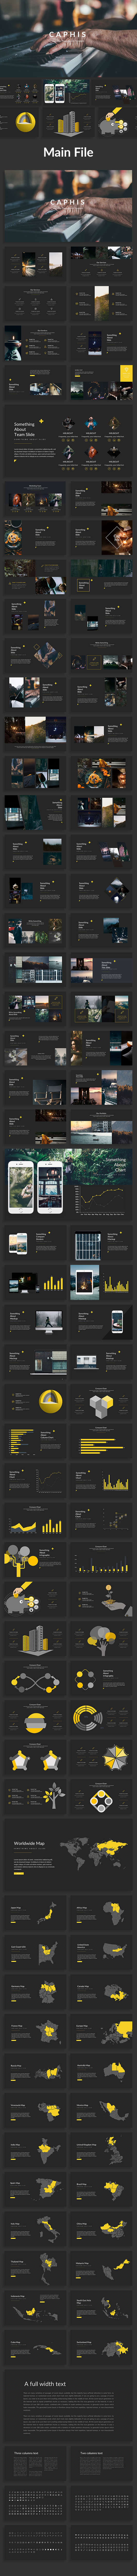 Caphis Creative Powerpoint Template - Creative PowerPoint Templates